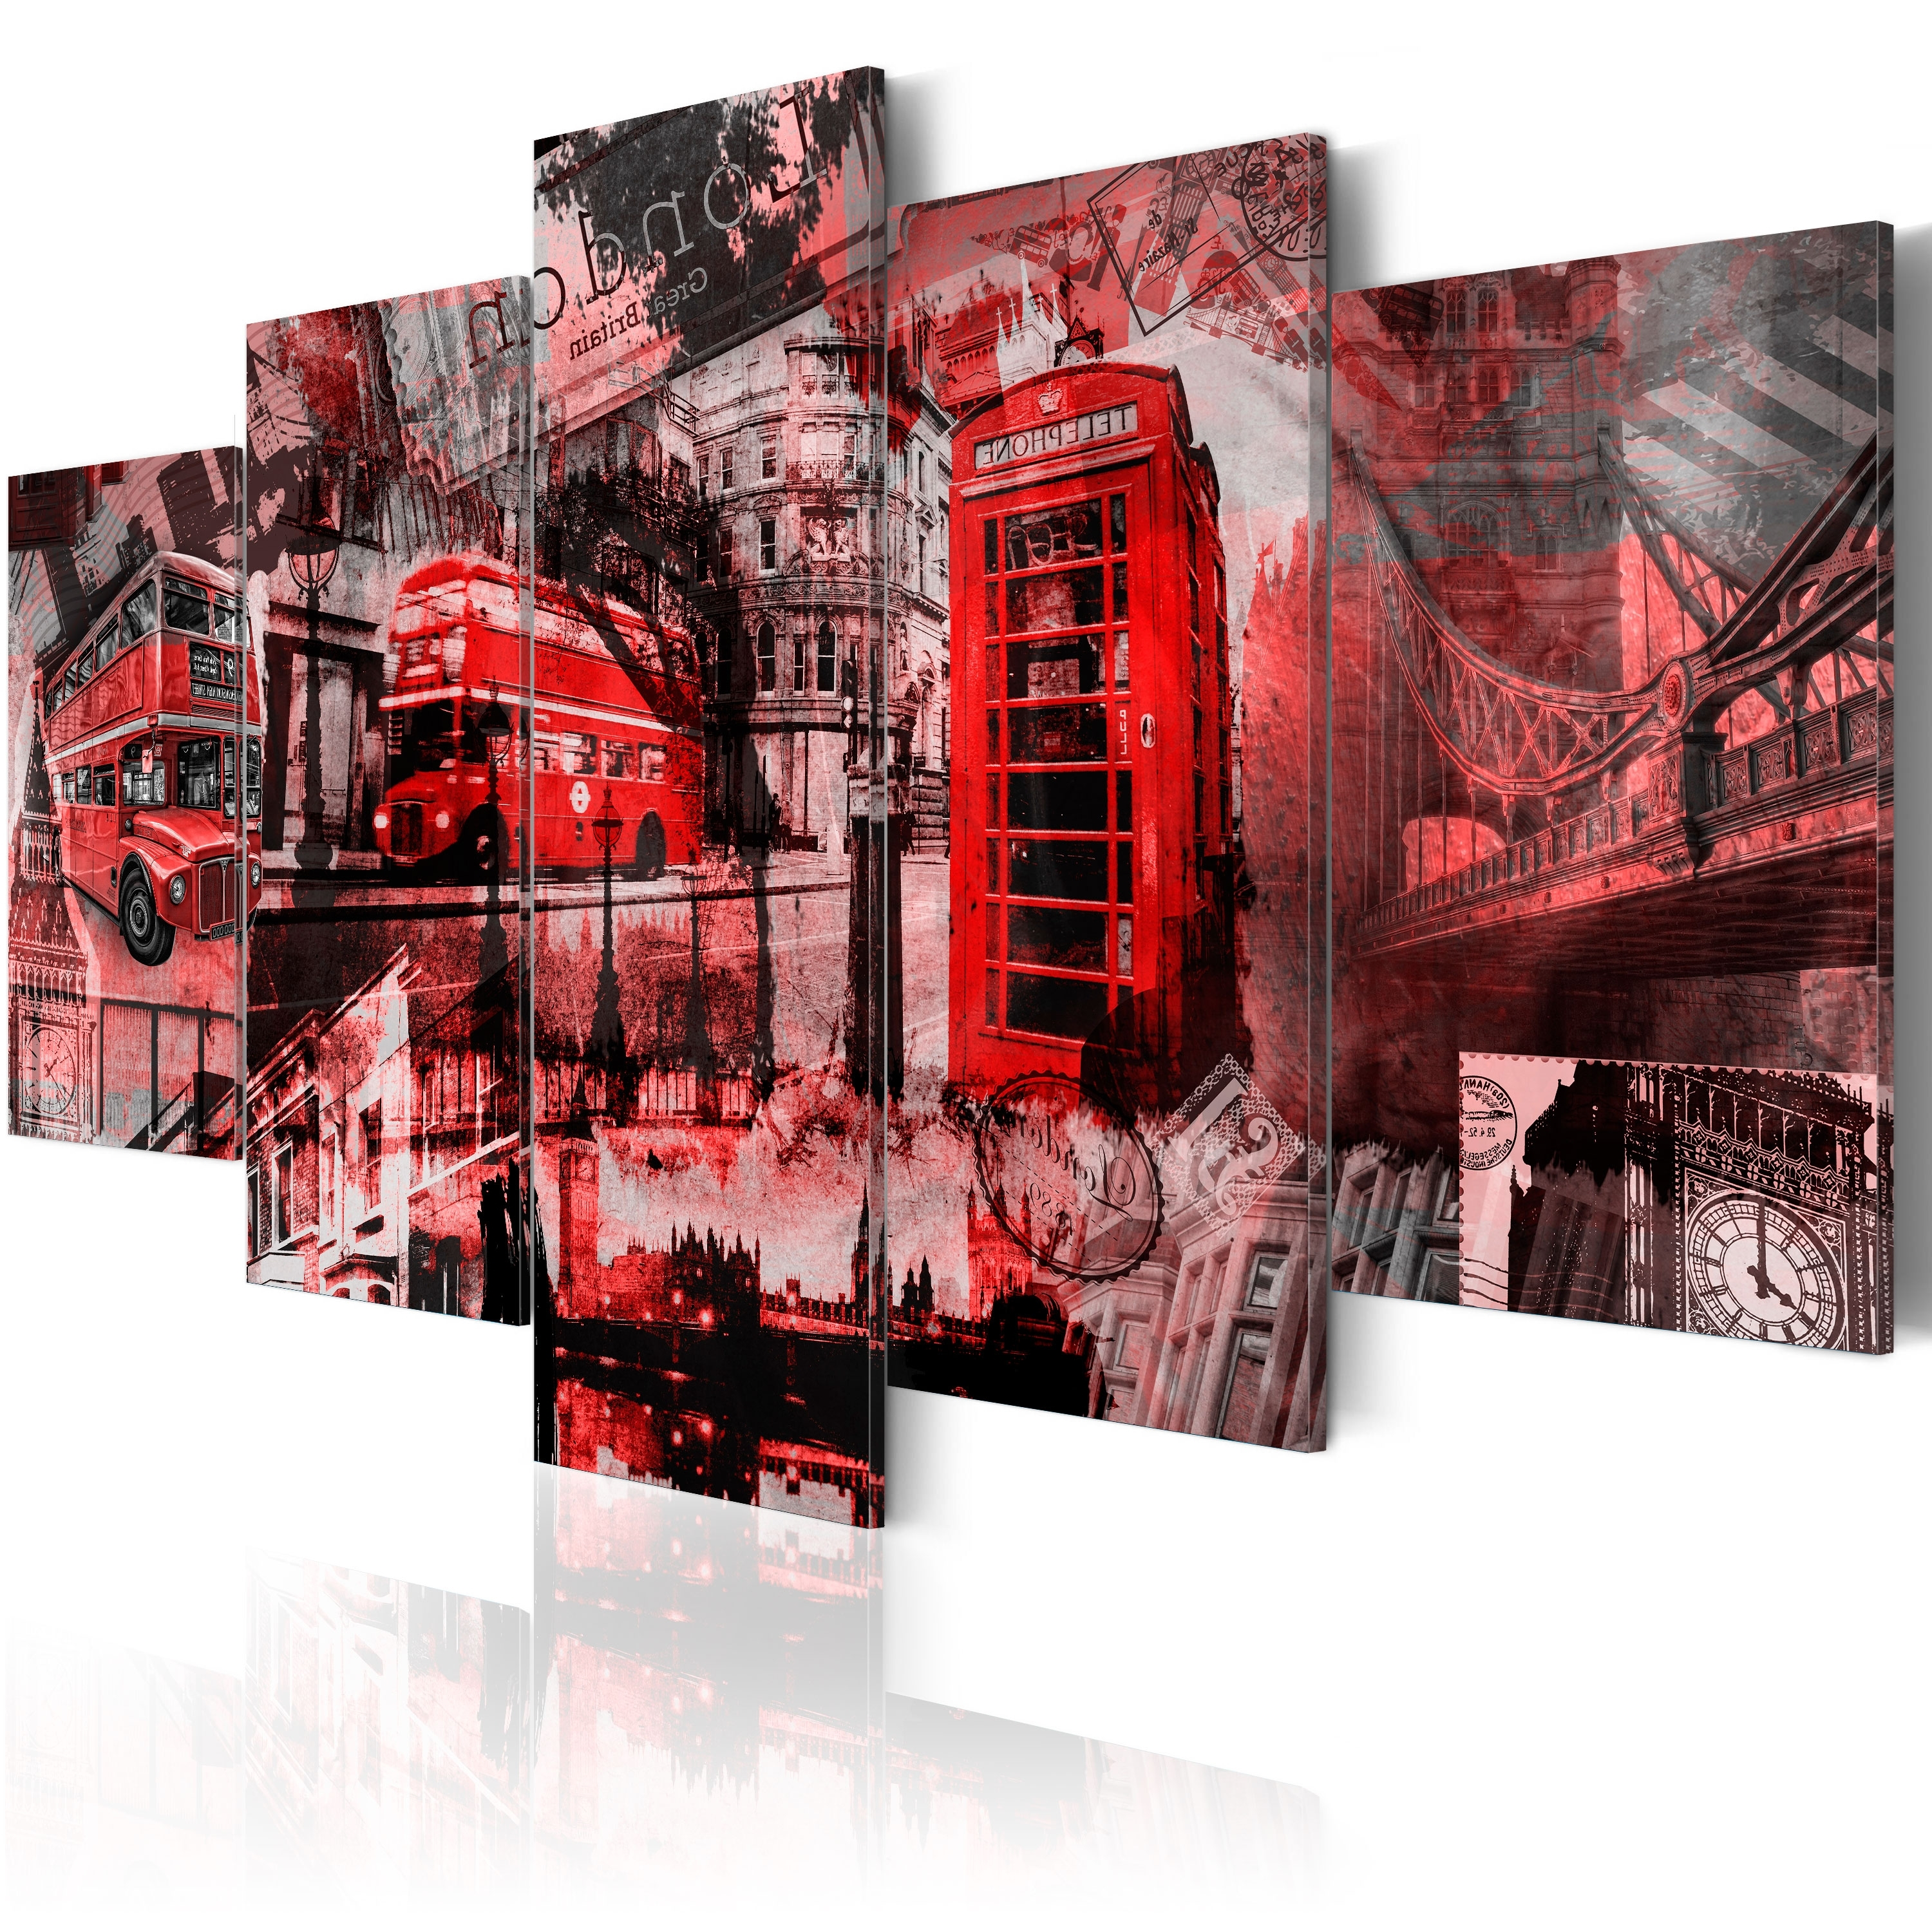 Preferred London Wall Art Throughout Canvas Wall Art Print Image Picture Photo London 030117  (View 14 of 20)